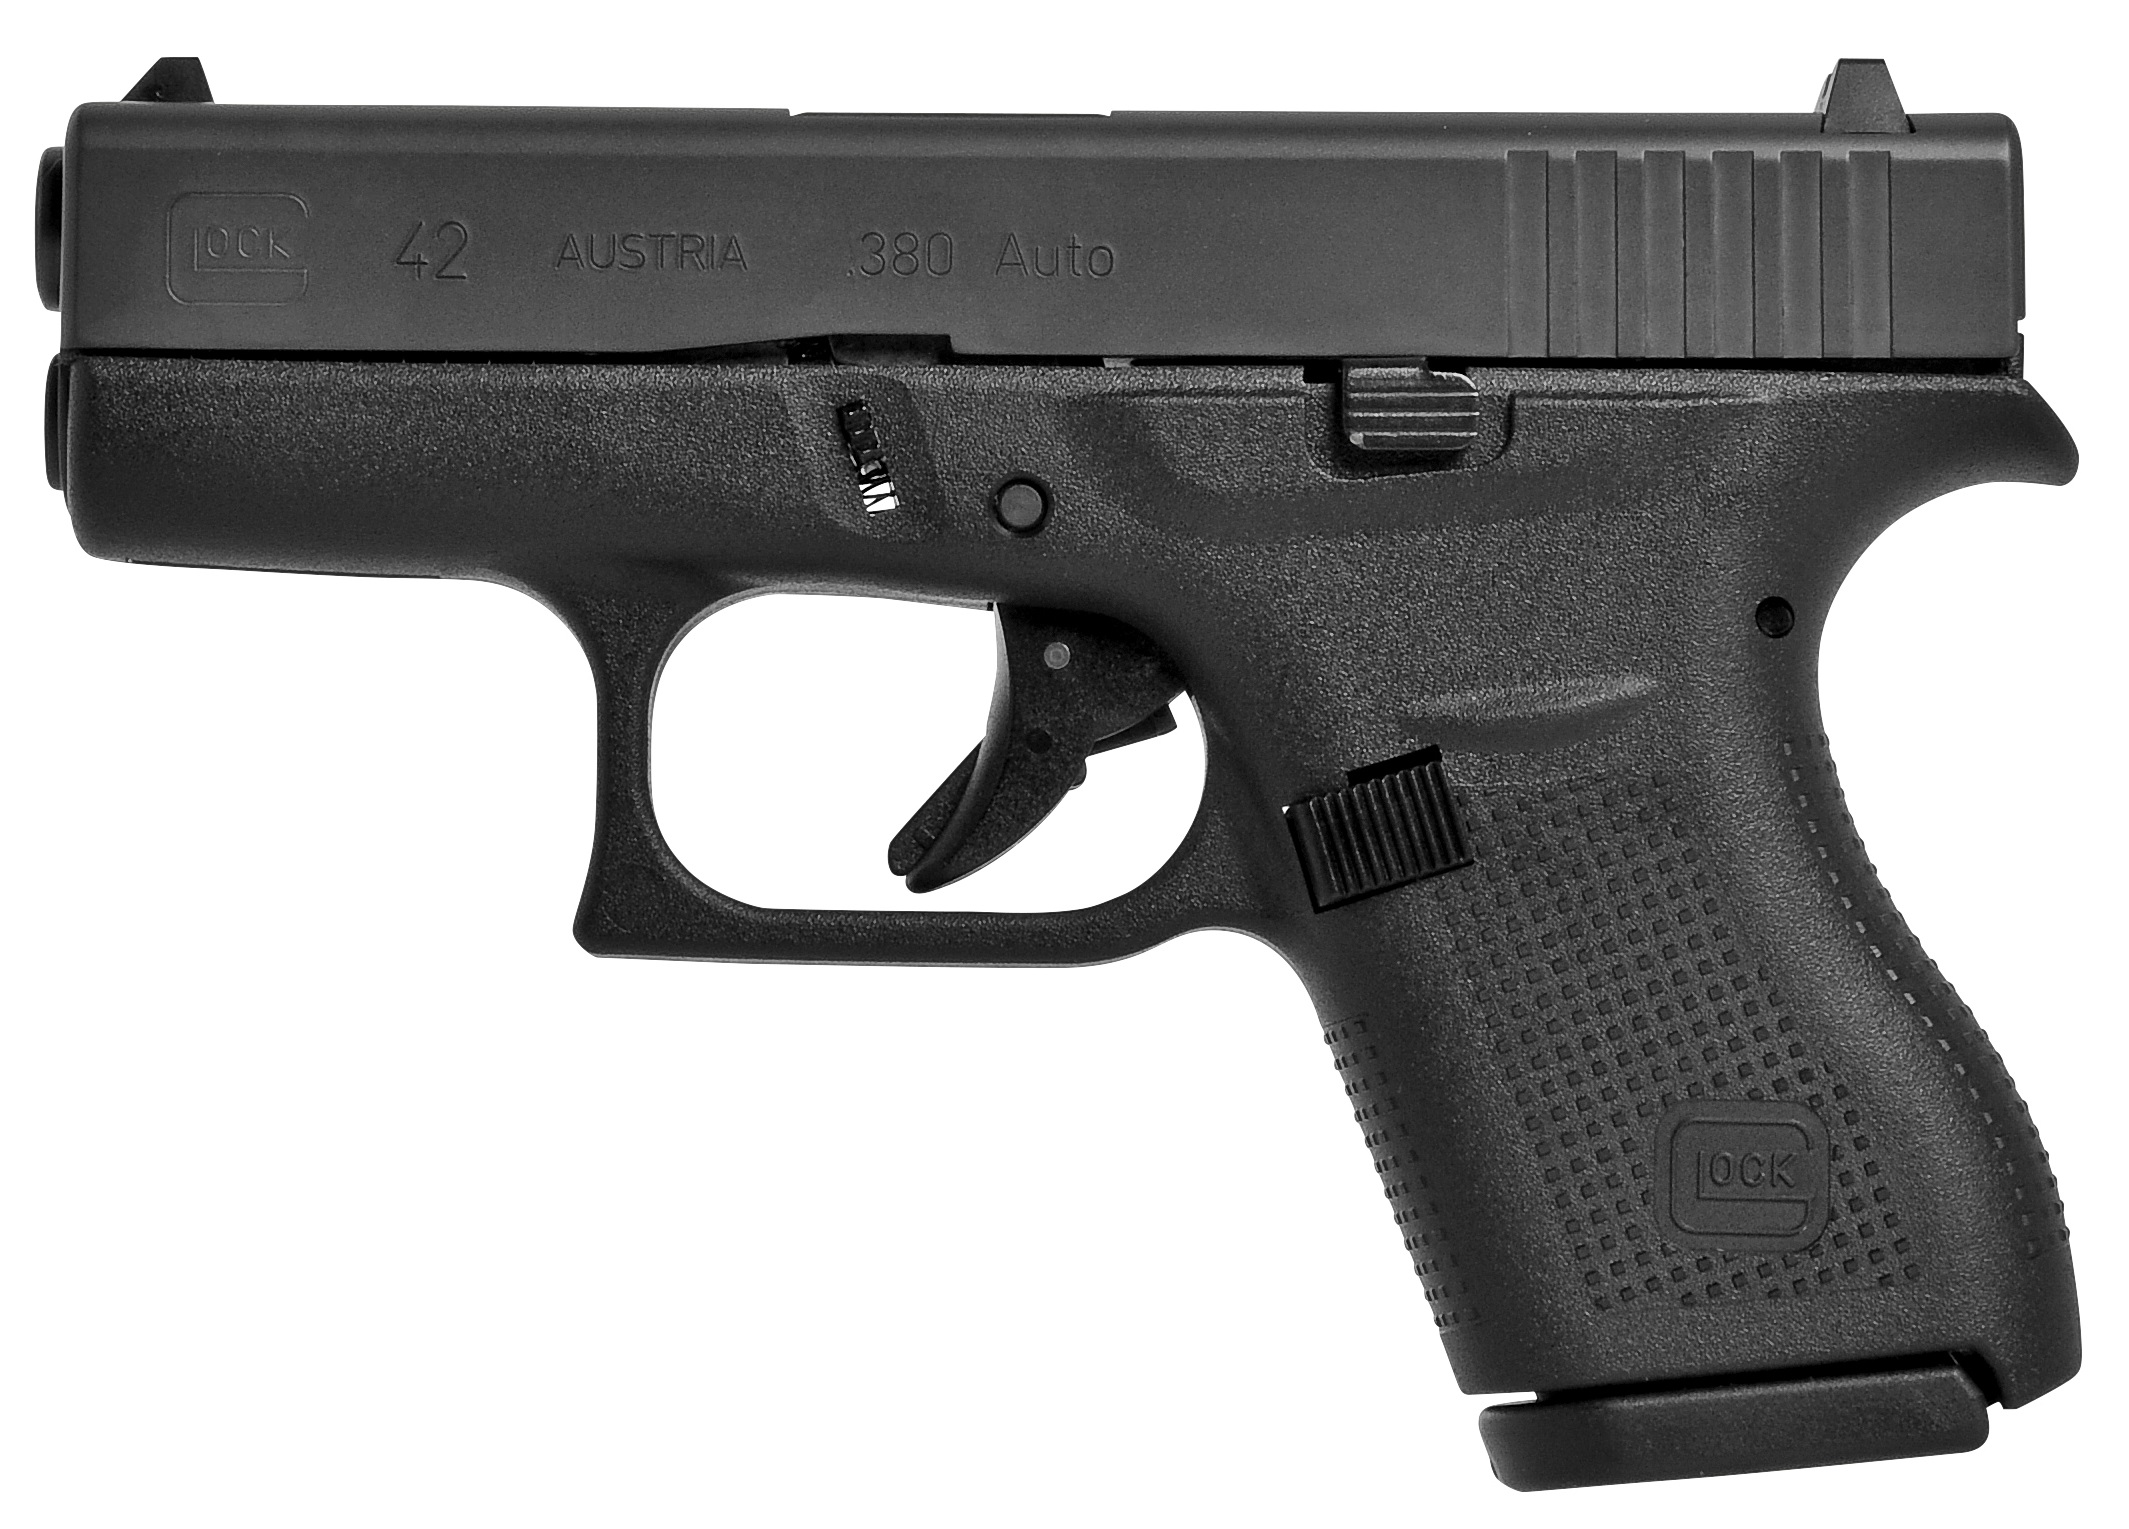 Glock 42 r. 9mm Brow.